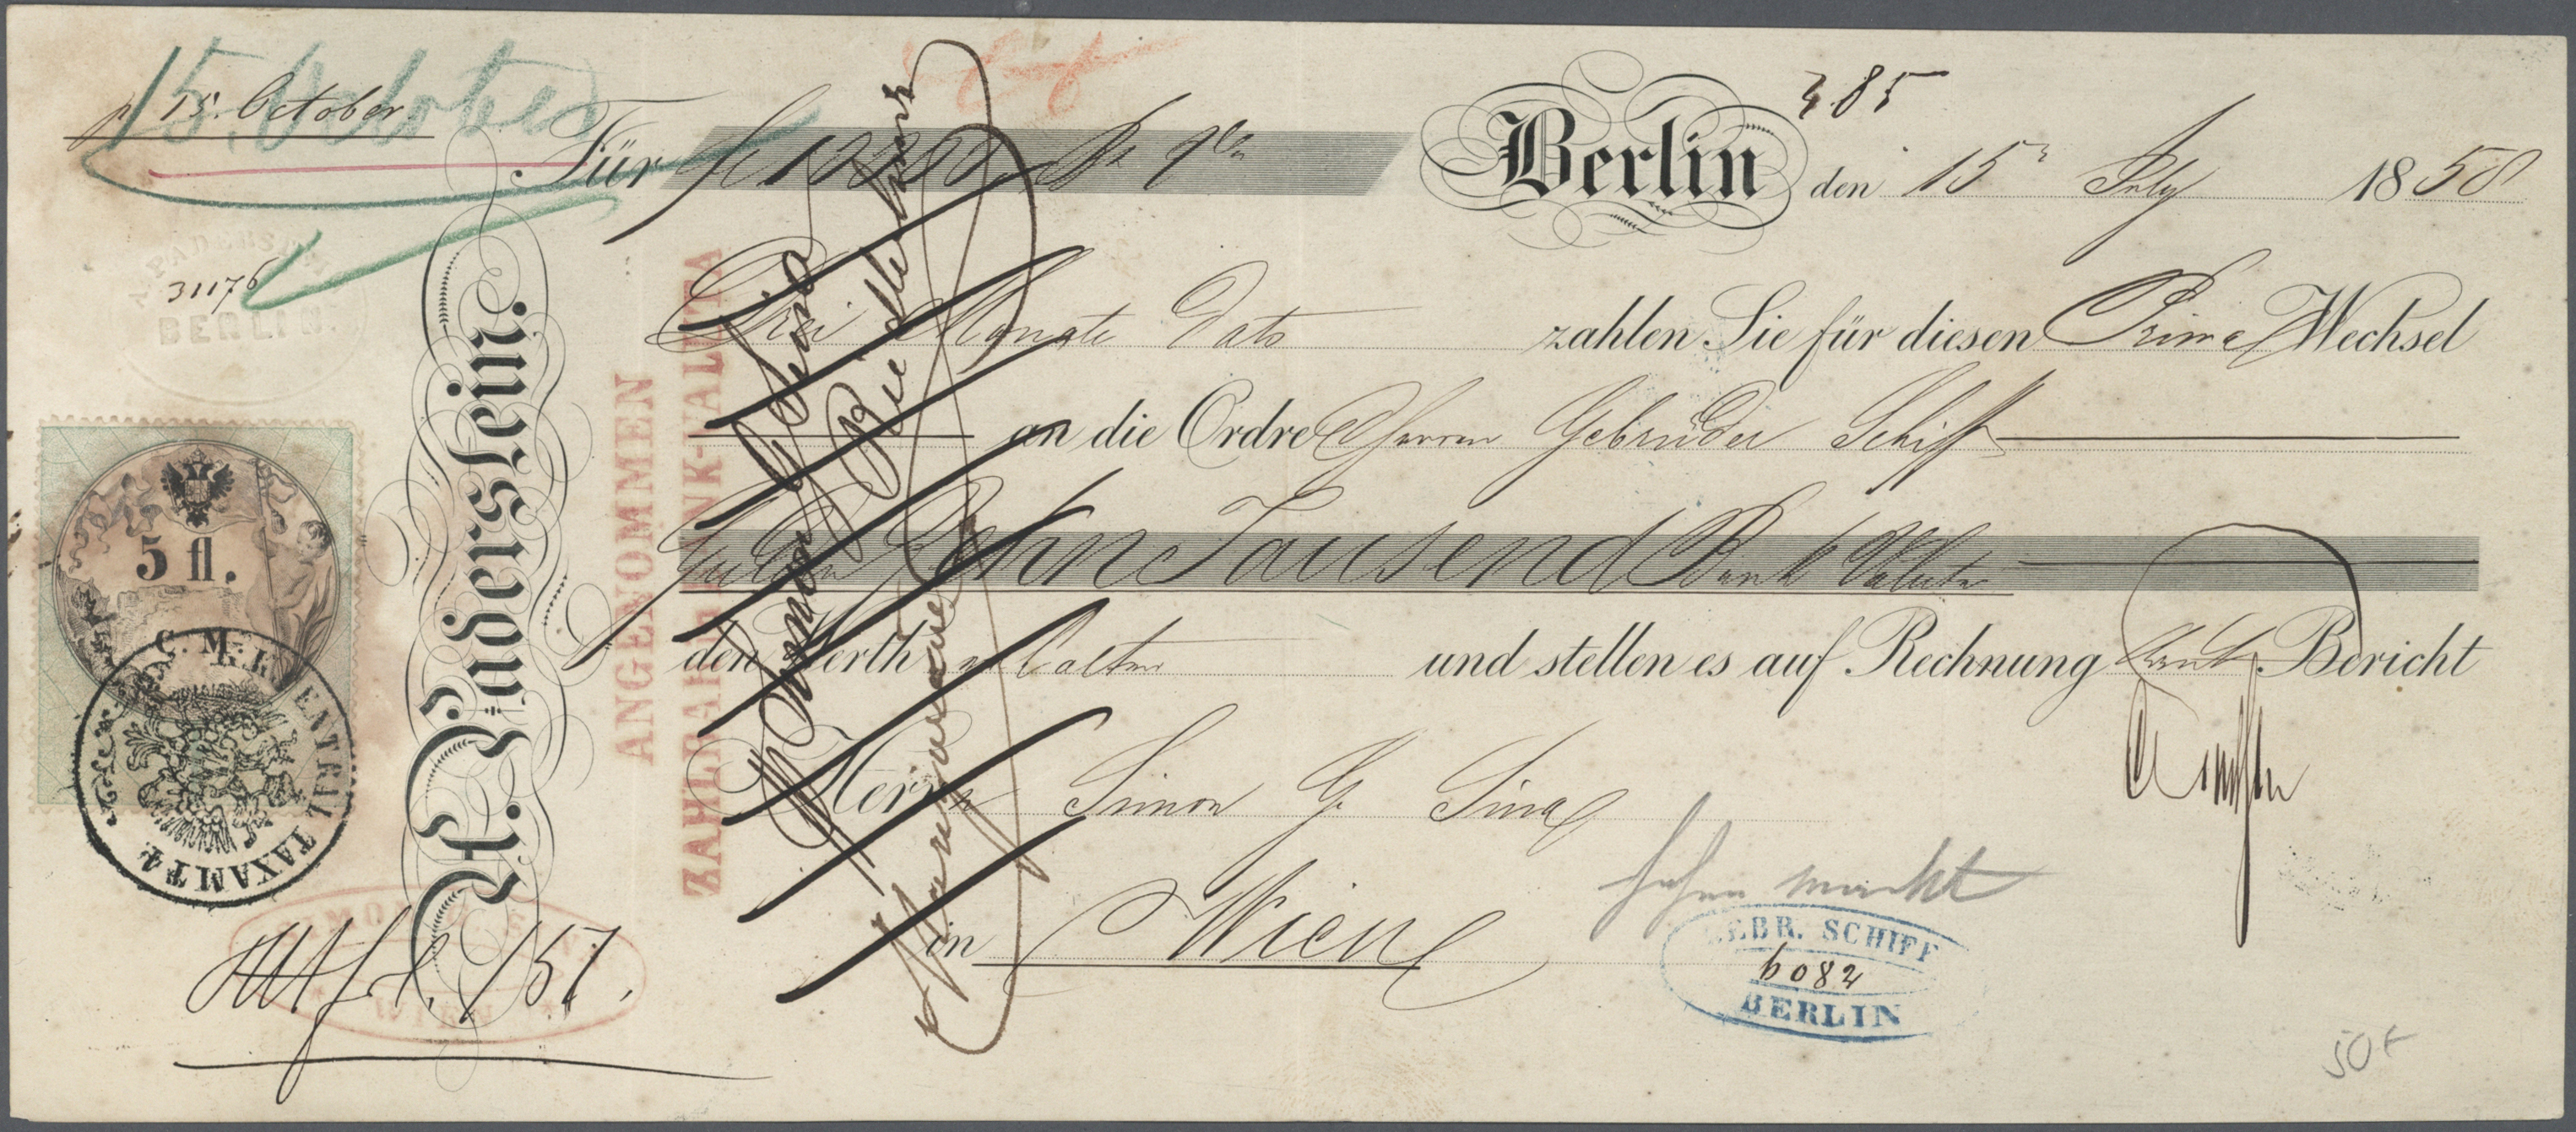 Lot 35082 - Deutschland - Sonstige | Banknoten  -  Auktionshaus Christoph Gärtner GmbH & Co. KG Collections Germany,  Collections Supplement, Surprise boxes #39 Day 7